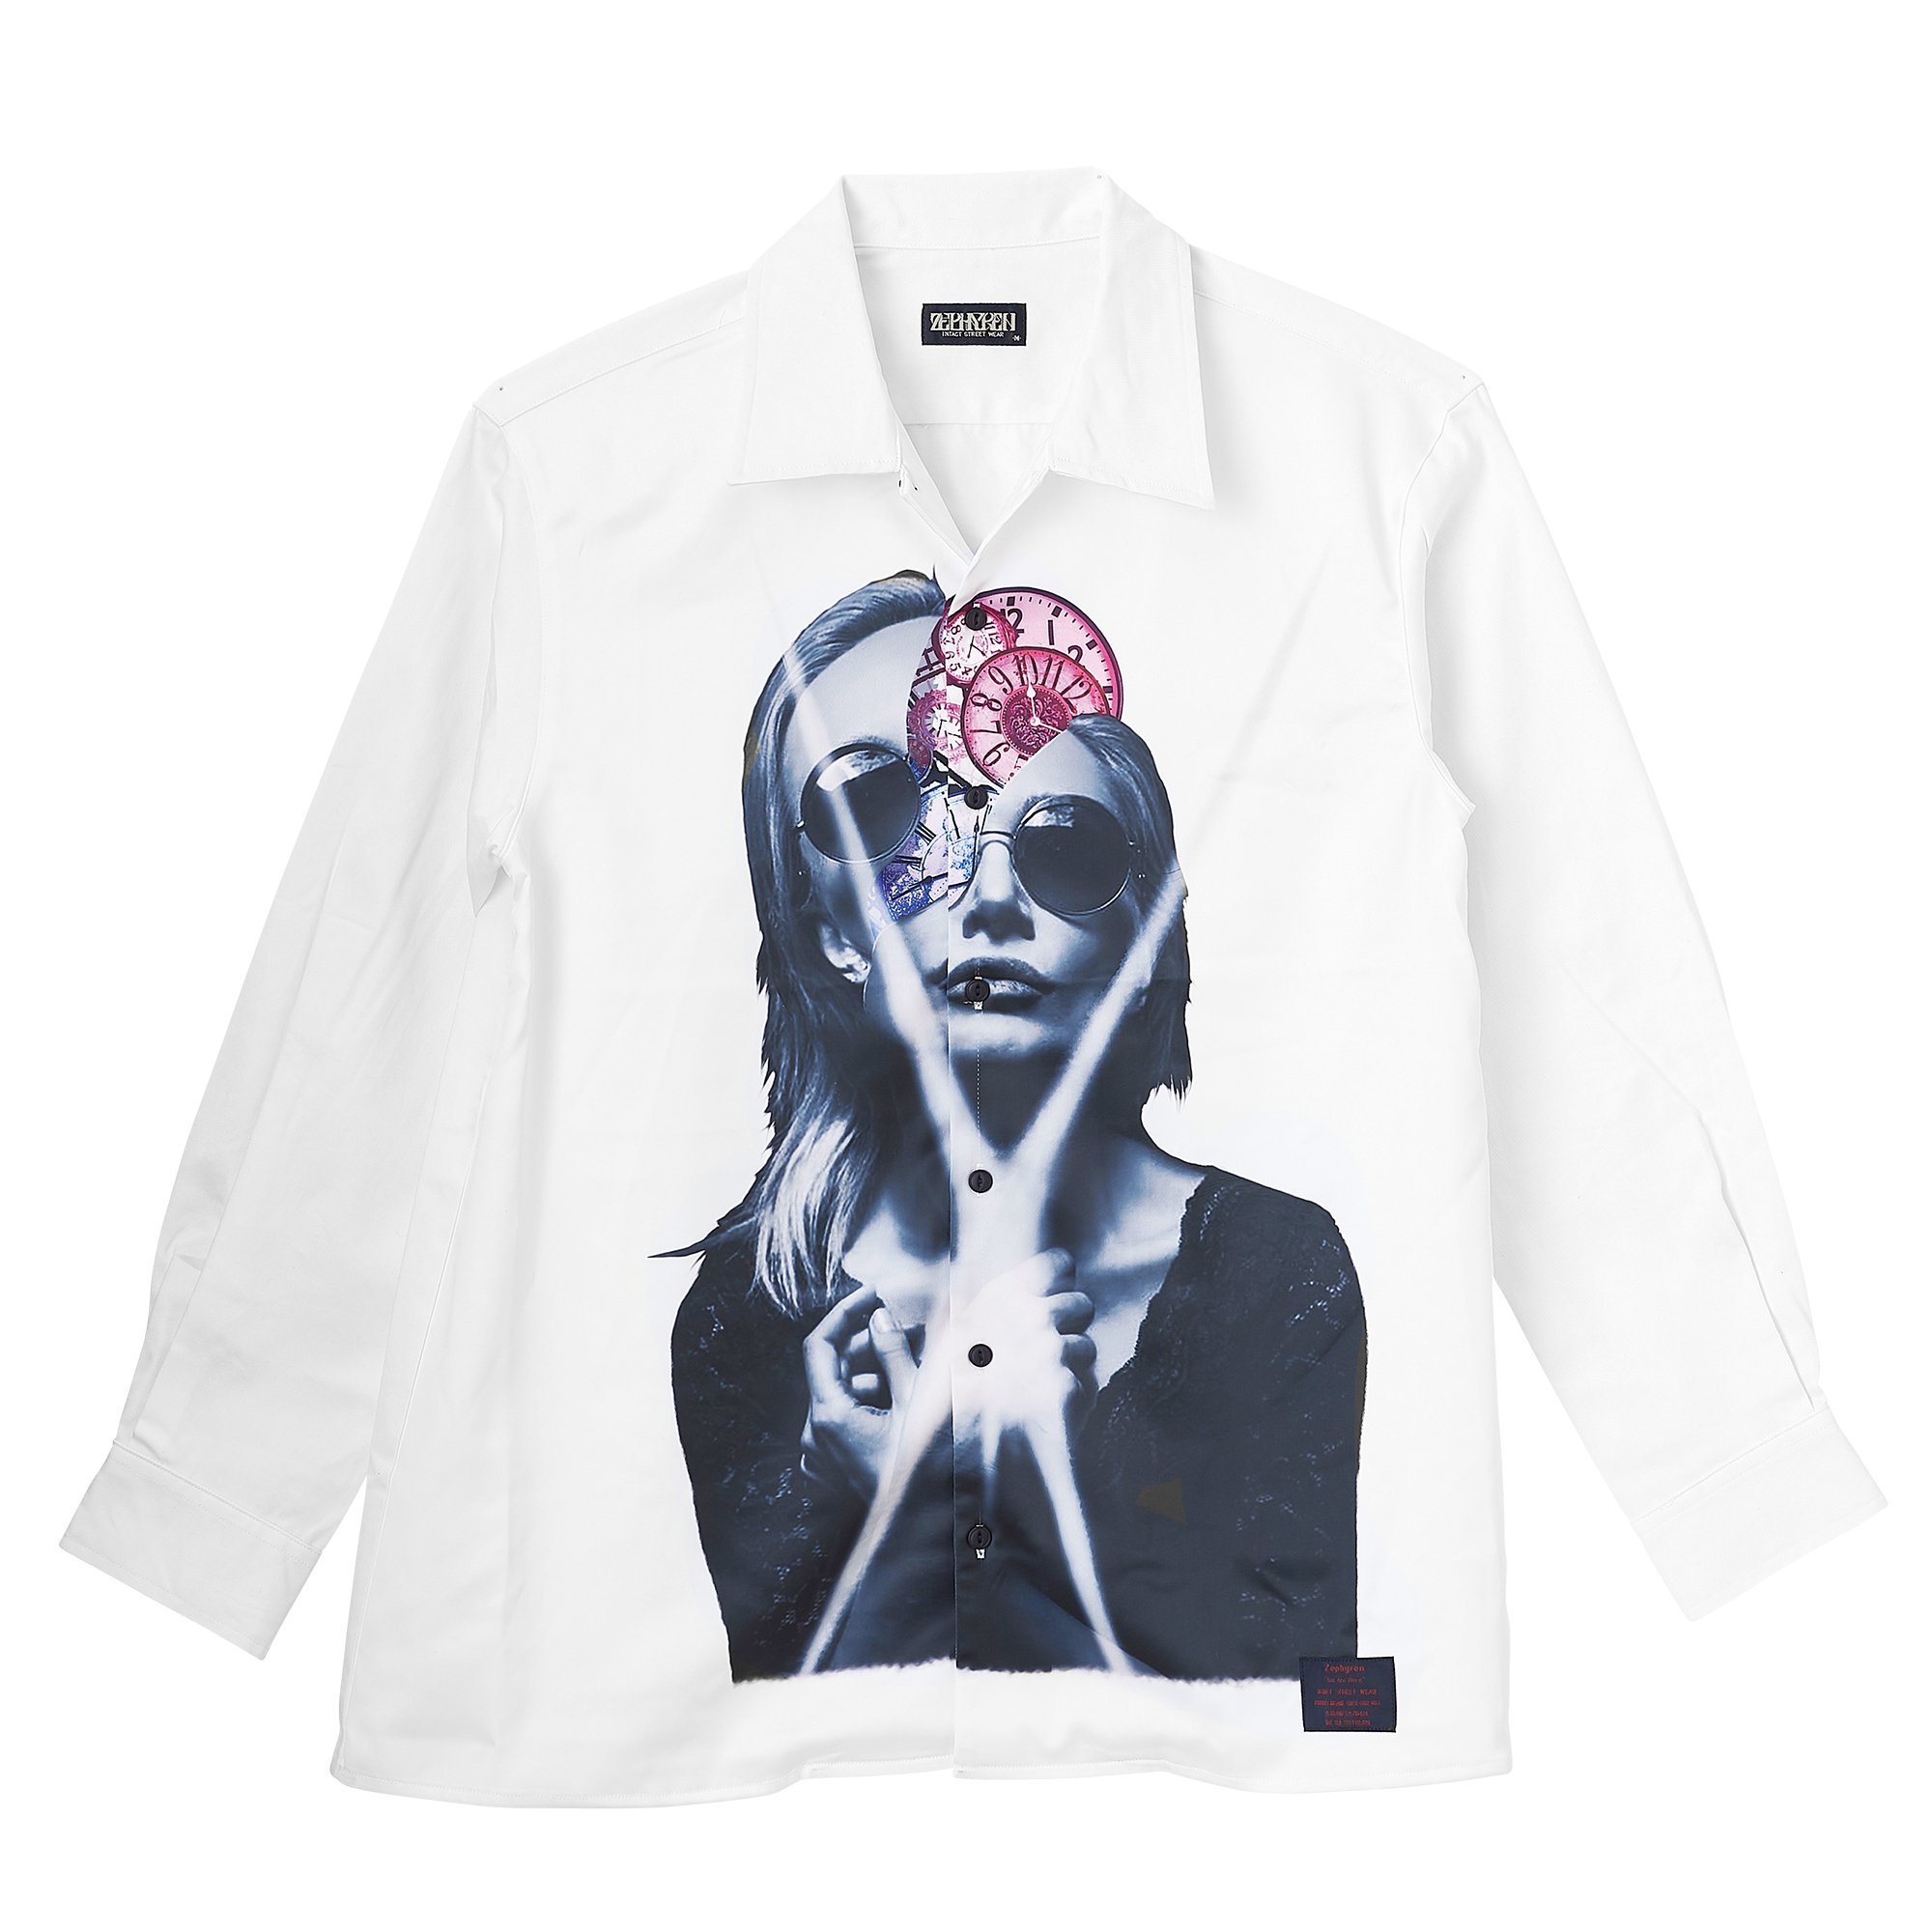 Zephyren(ゼファレン)PHOTO PRINT SHIRT L/S WHITE / variat omnia tempus